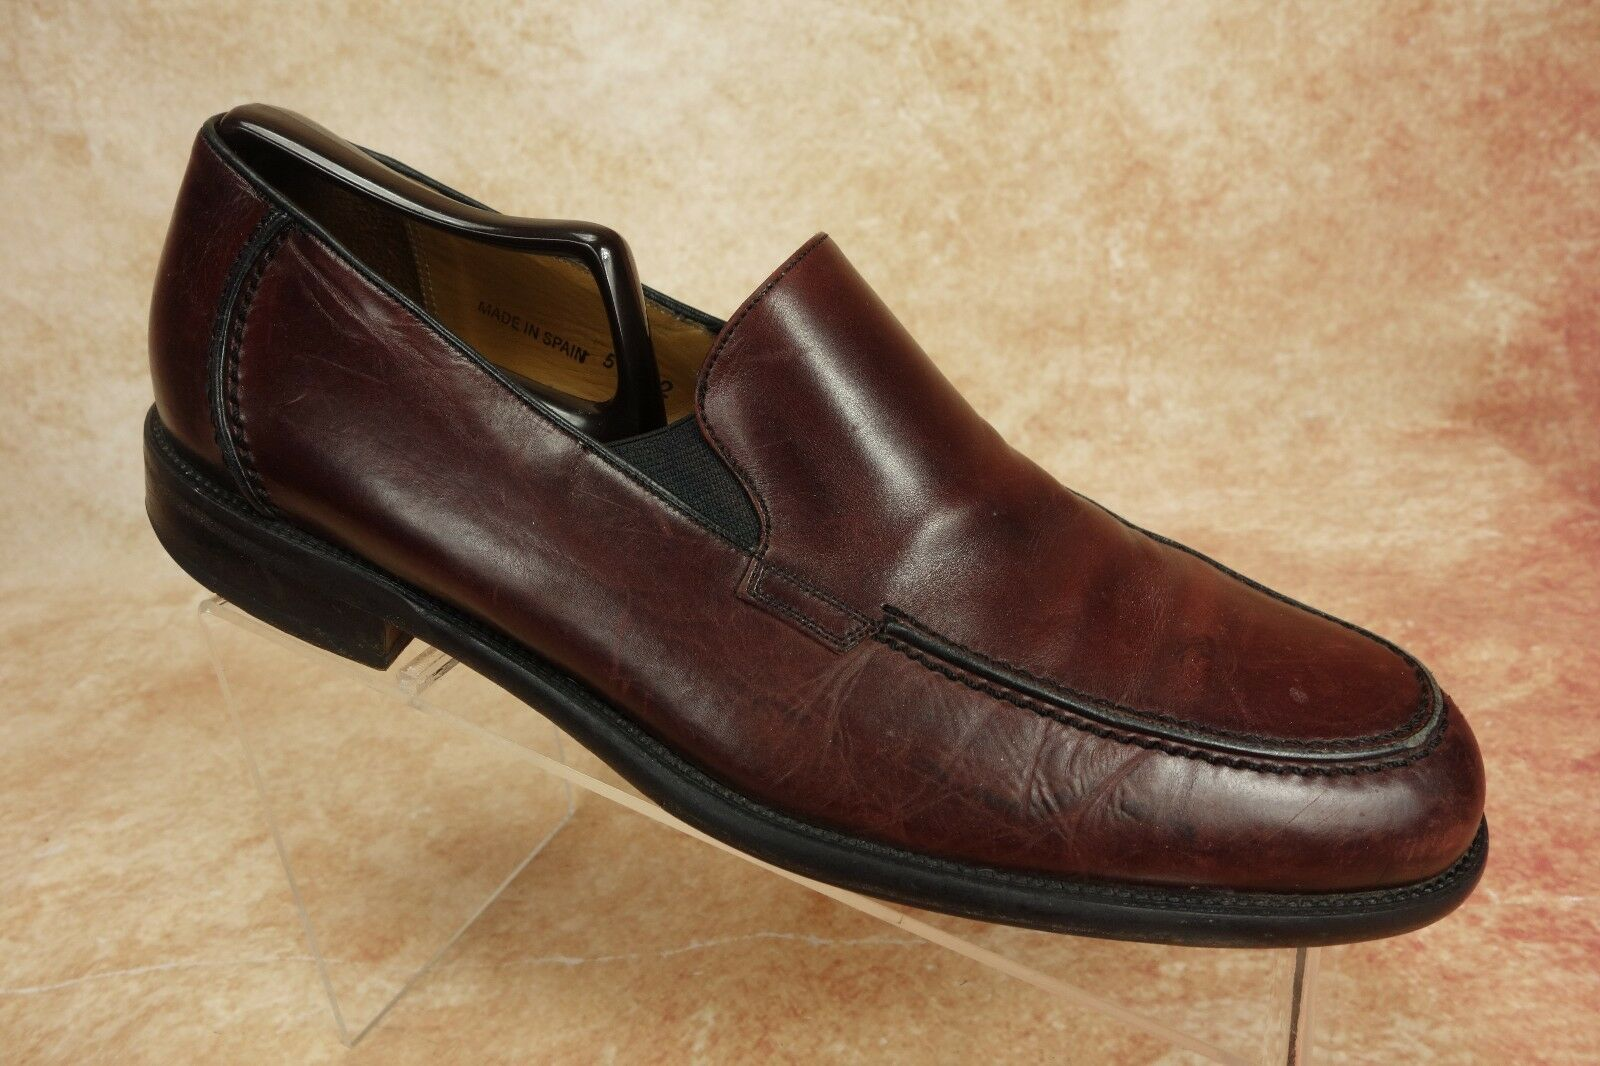 Mezlan Toscana Burgundy Leather MocToe Dress Venetian Loafers Mens Size 9M Spain